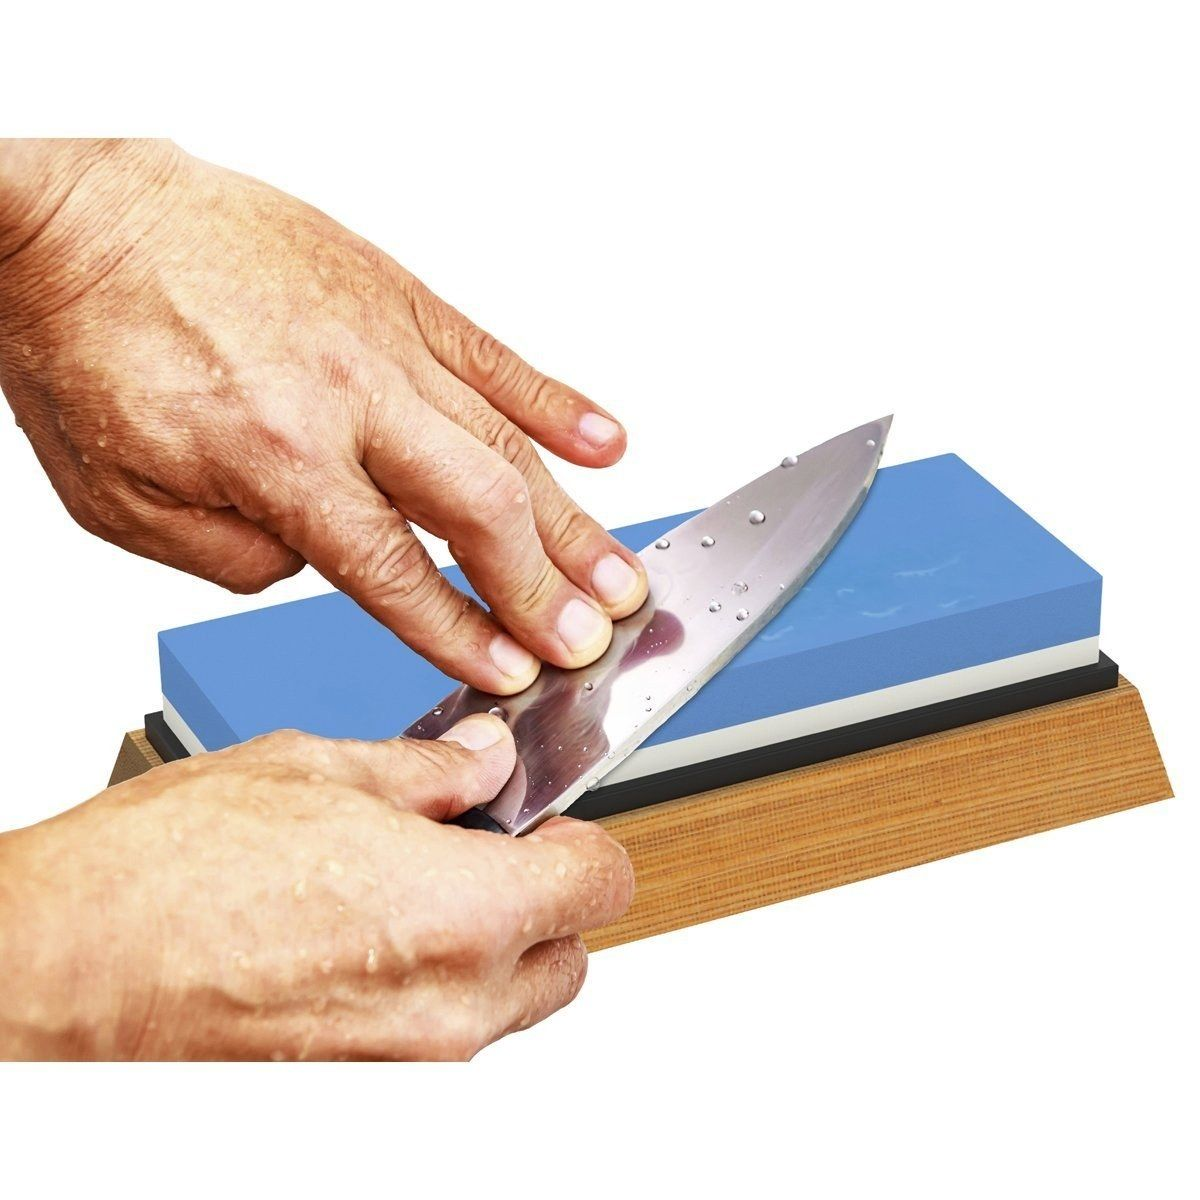 How To Sharpen A Knife And Hone It The Right Way Epicurious Knife Sharpening Stone Best Knife Sharpener Knife Sharpening